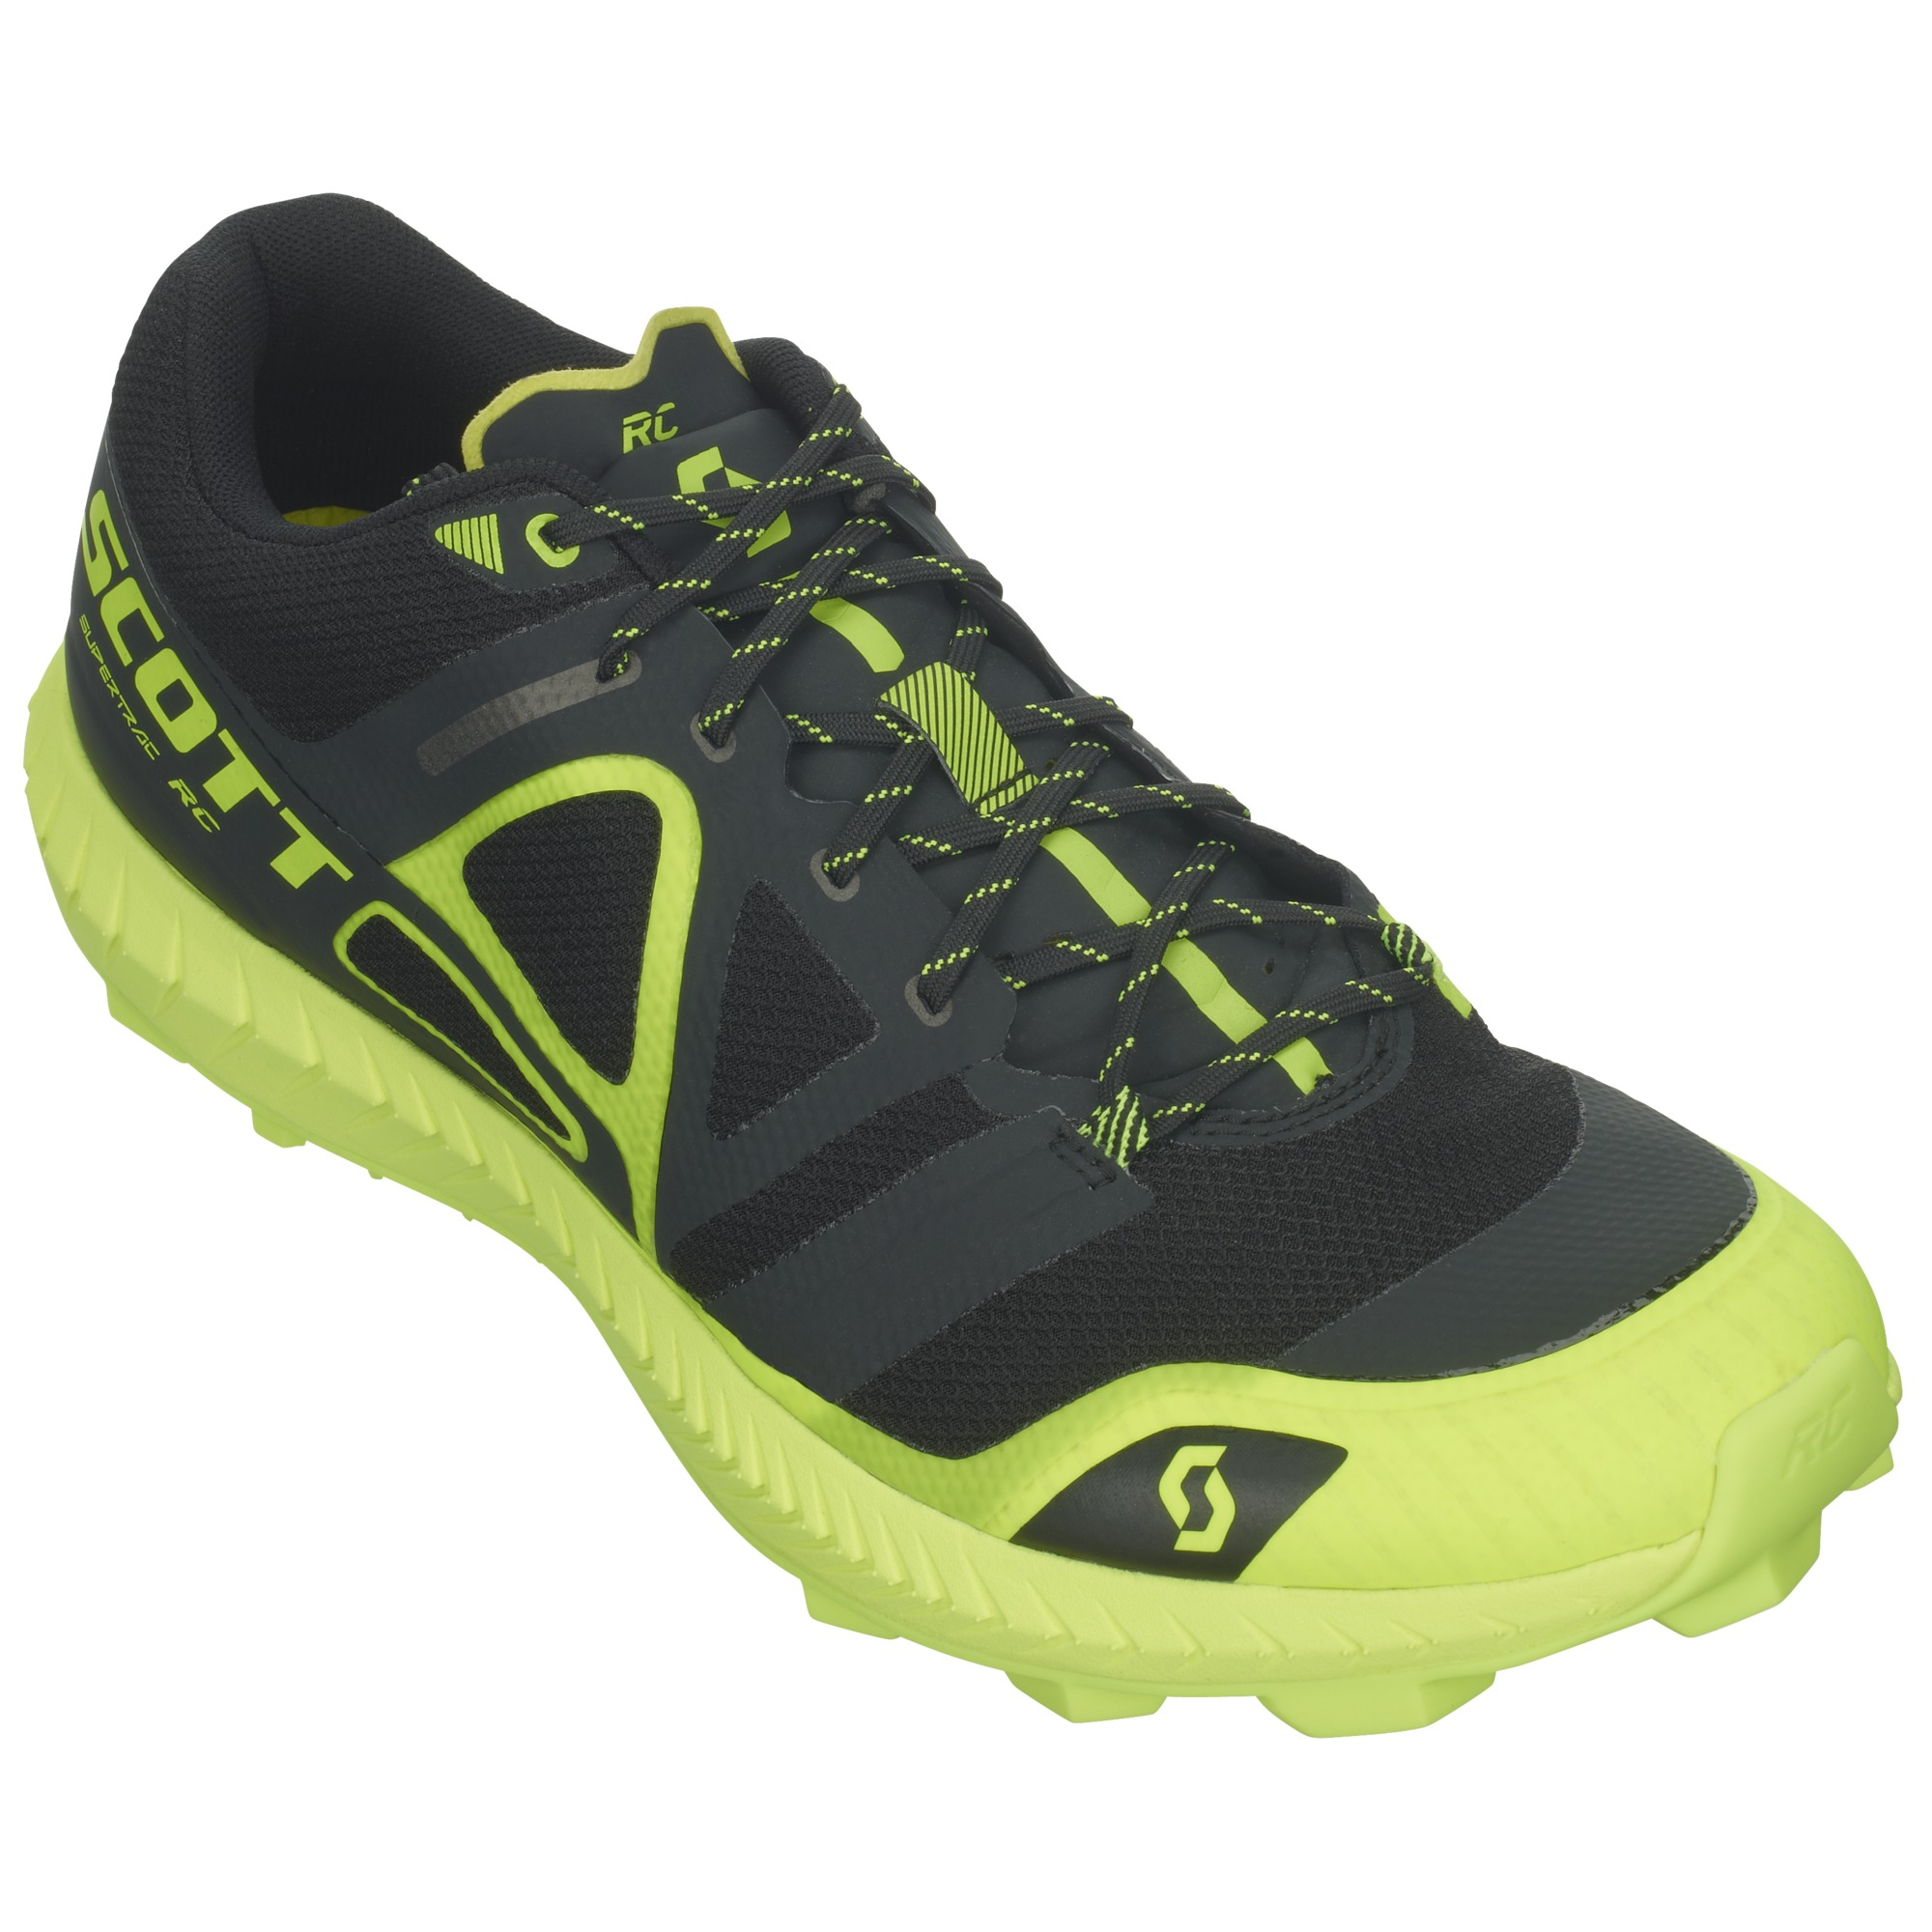 SCOTT Supertrac RC Shoe